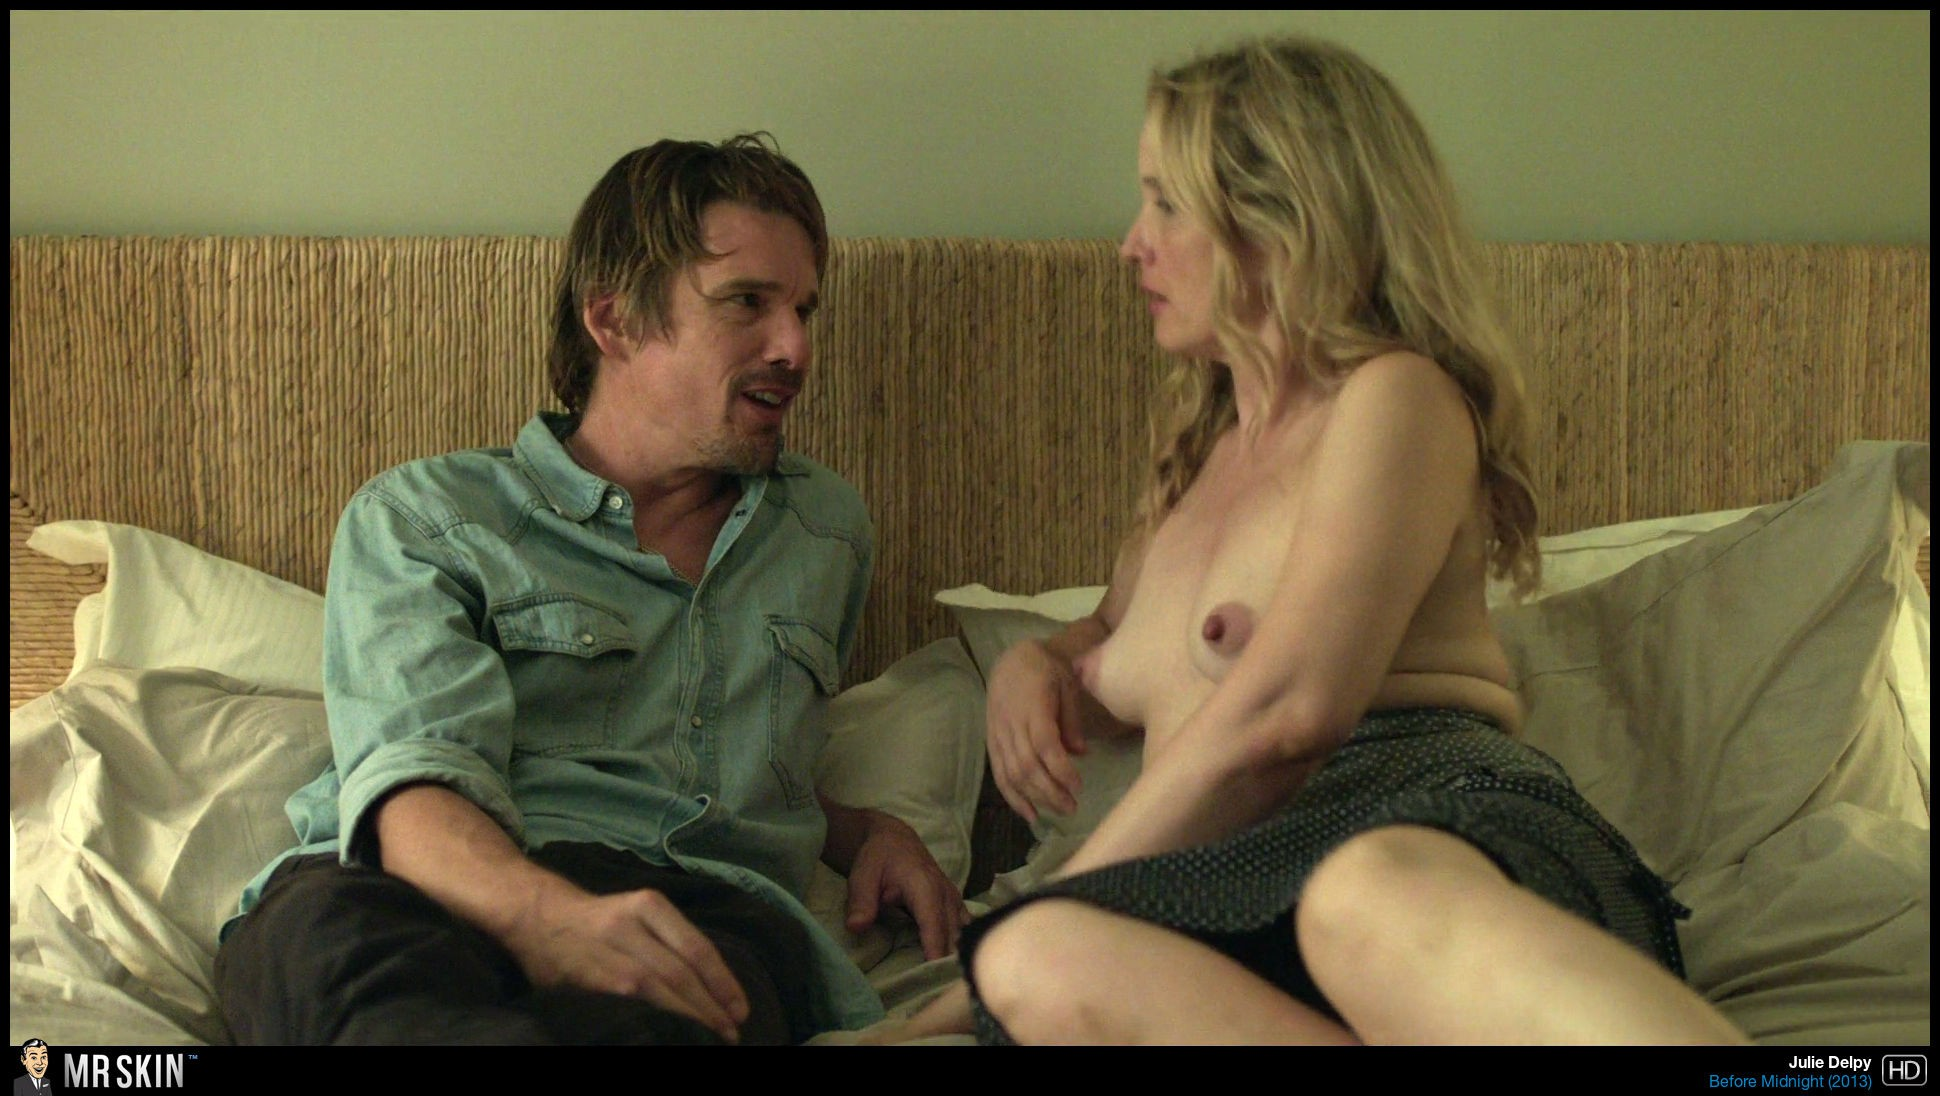 julie-delpy-naked-pictures-male-barn-yard-sex-pics